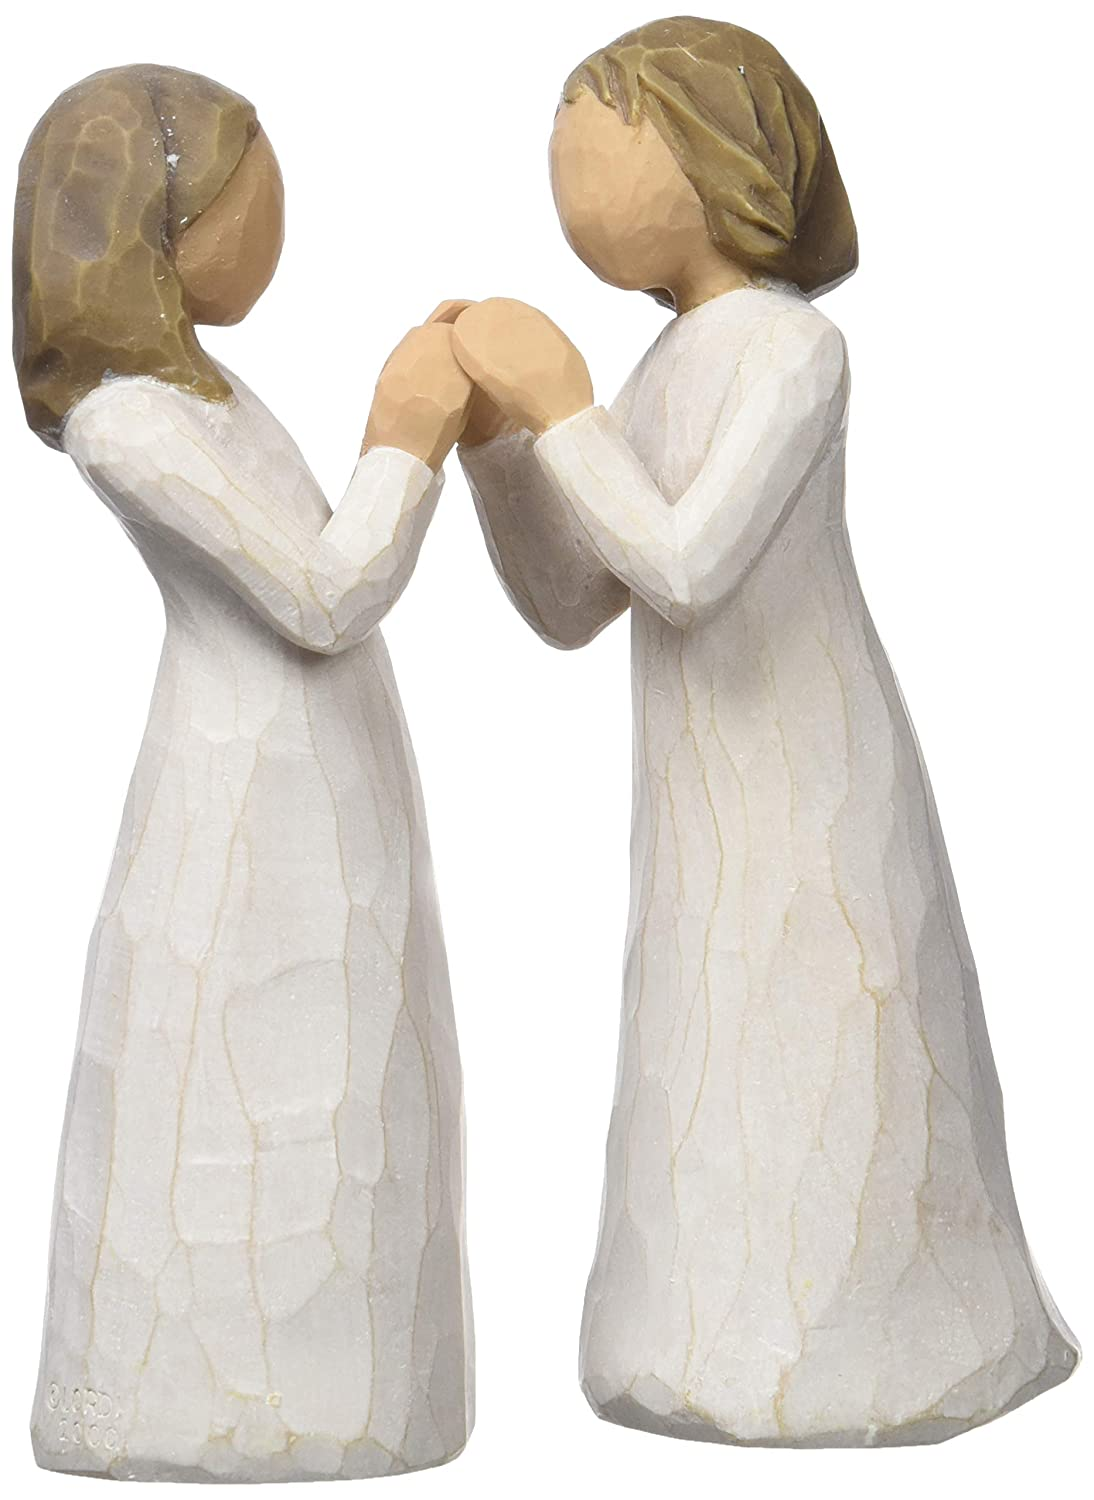 Willow Tree hand-painted sculpted figure, Sisters by Heart, 2-piece set (26023) DEMDACO - Home